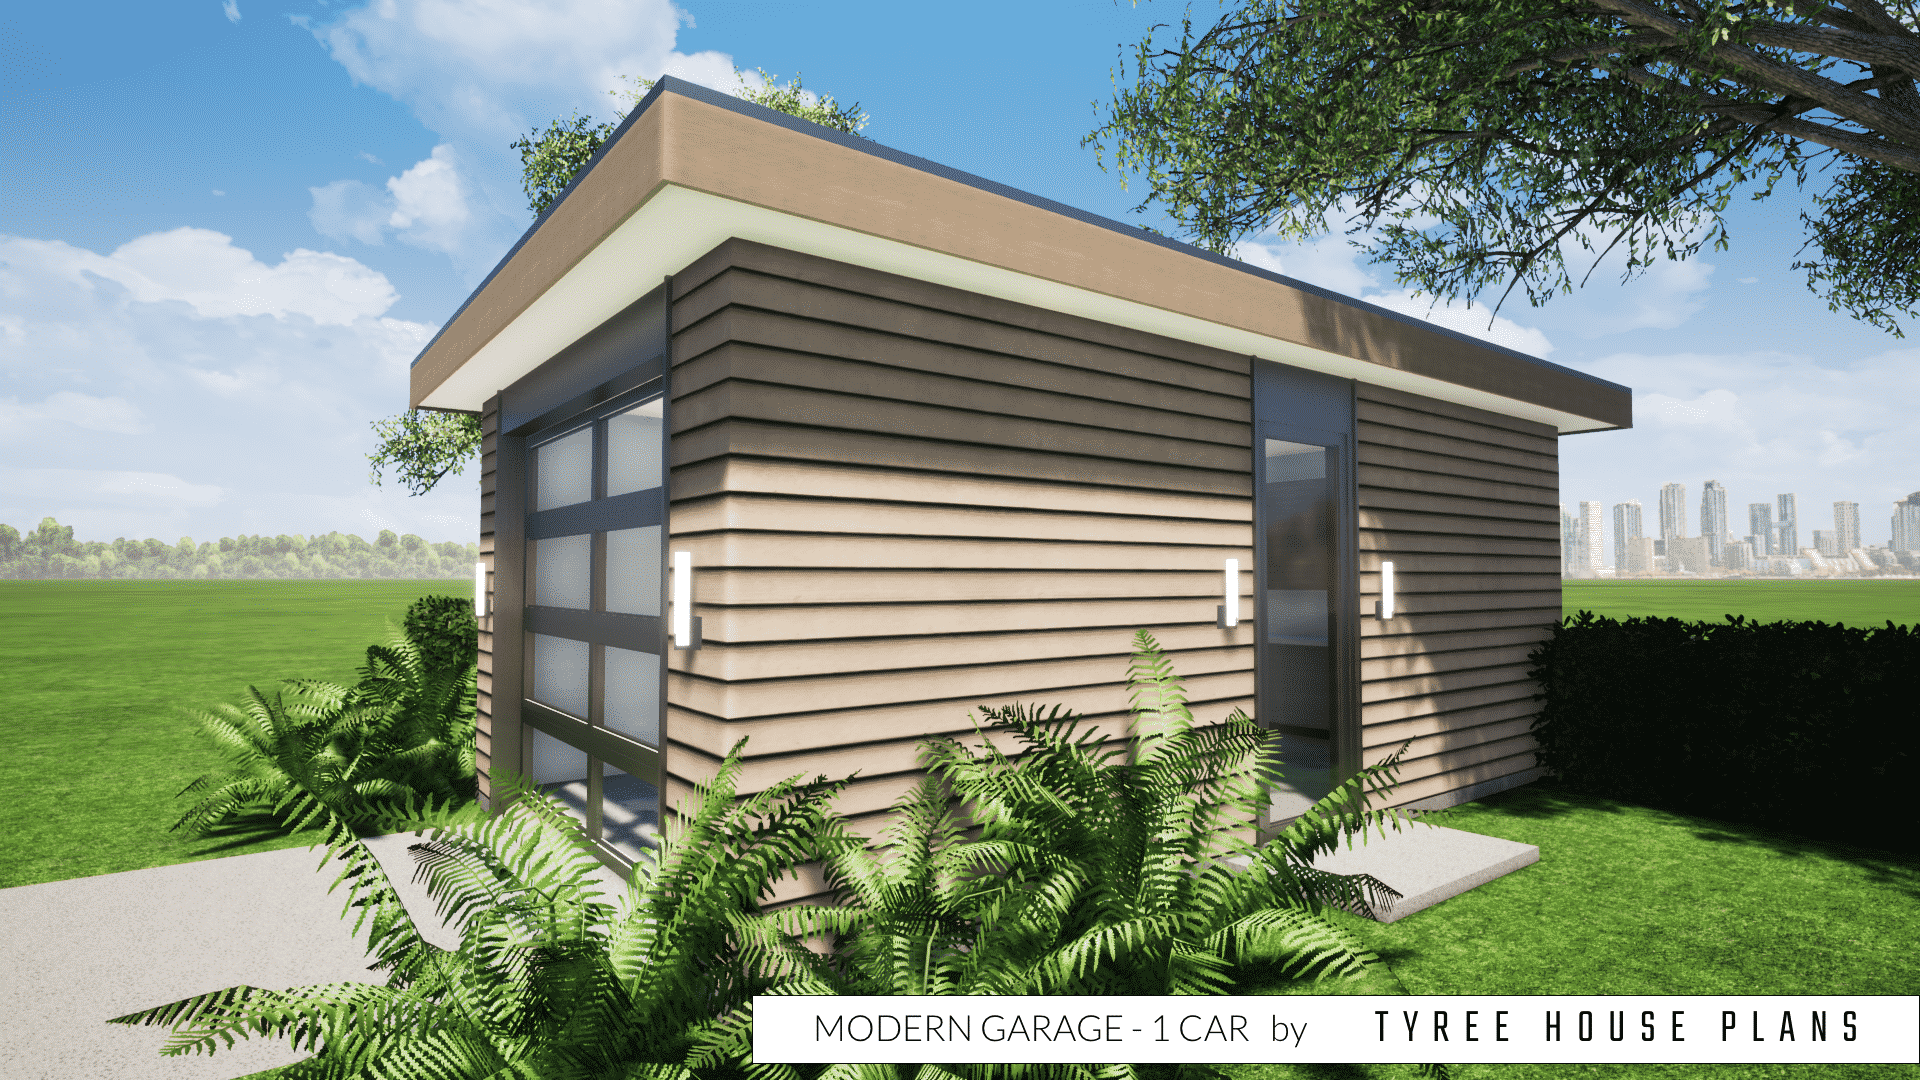 Modern Garage Plan - 1 Car by Tyree House Plans